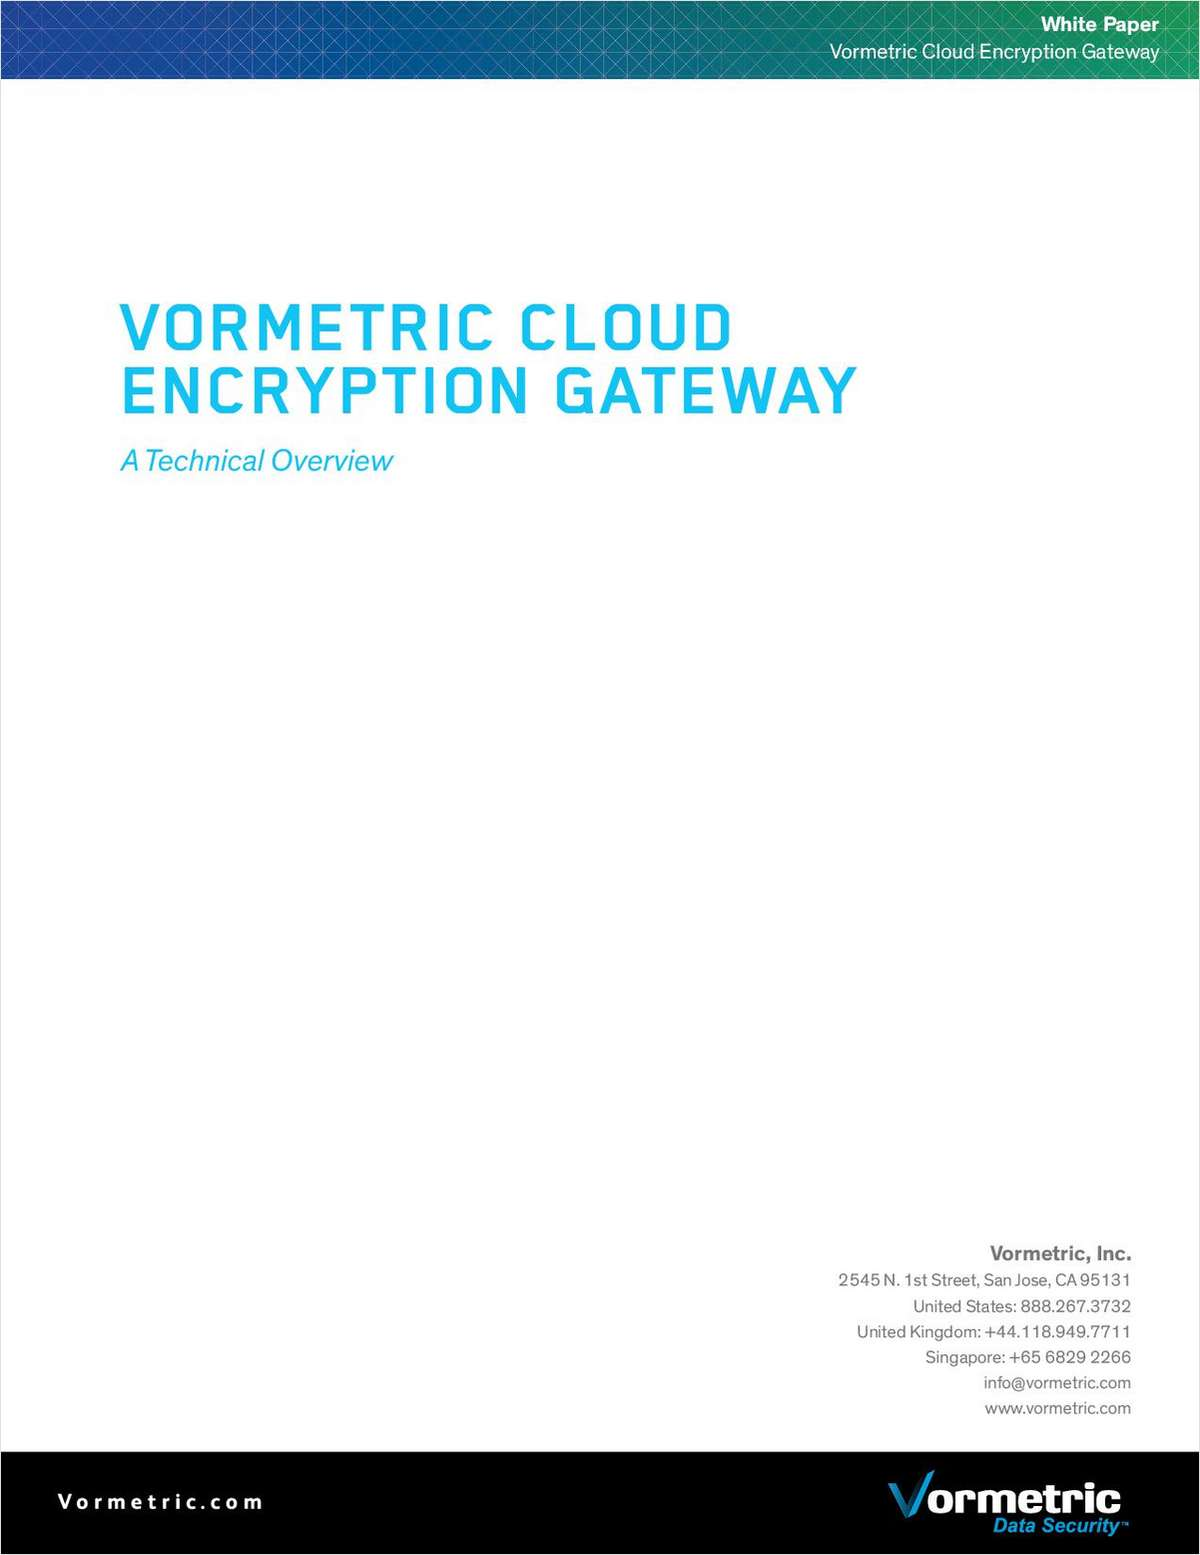 Vormetric Cloud Encryption Gateway: A Technical Overview